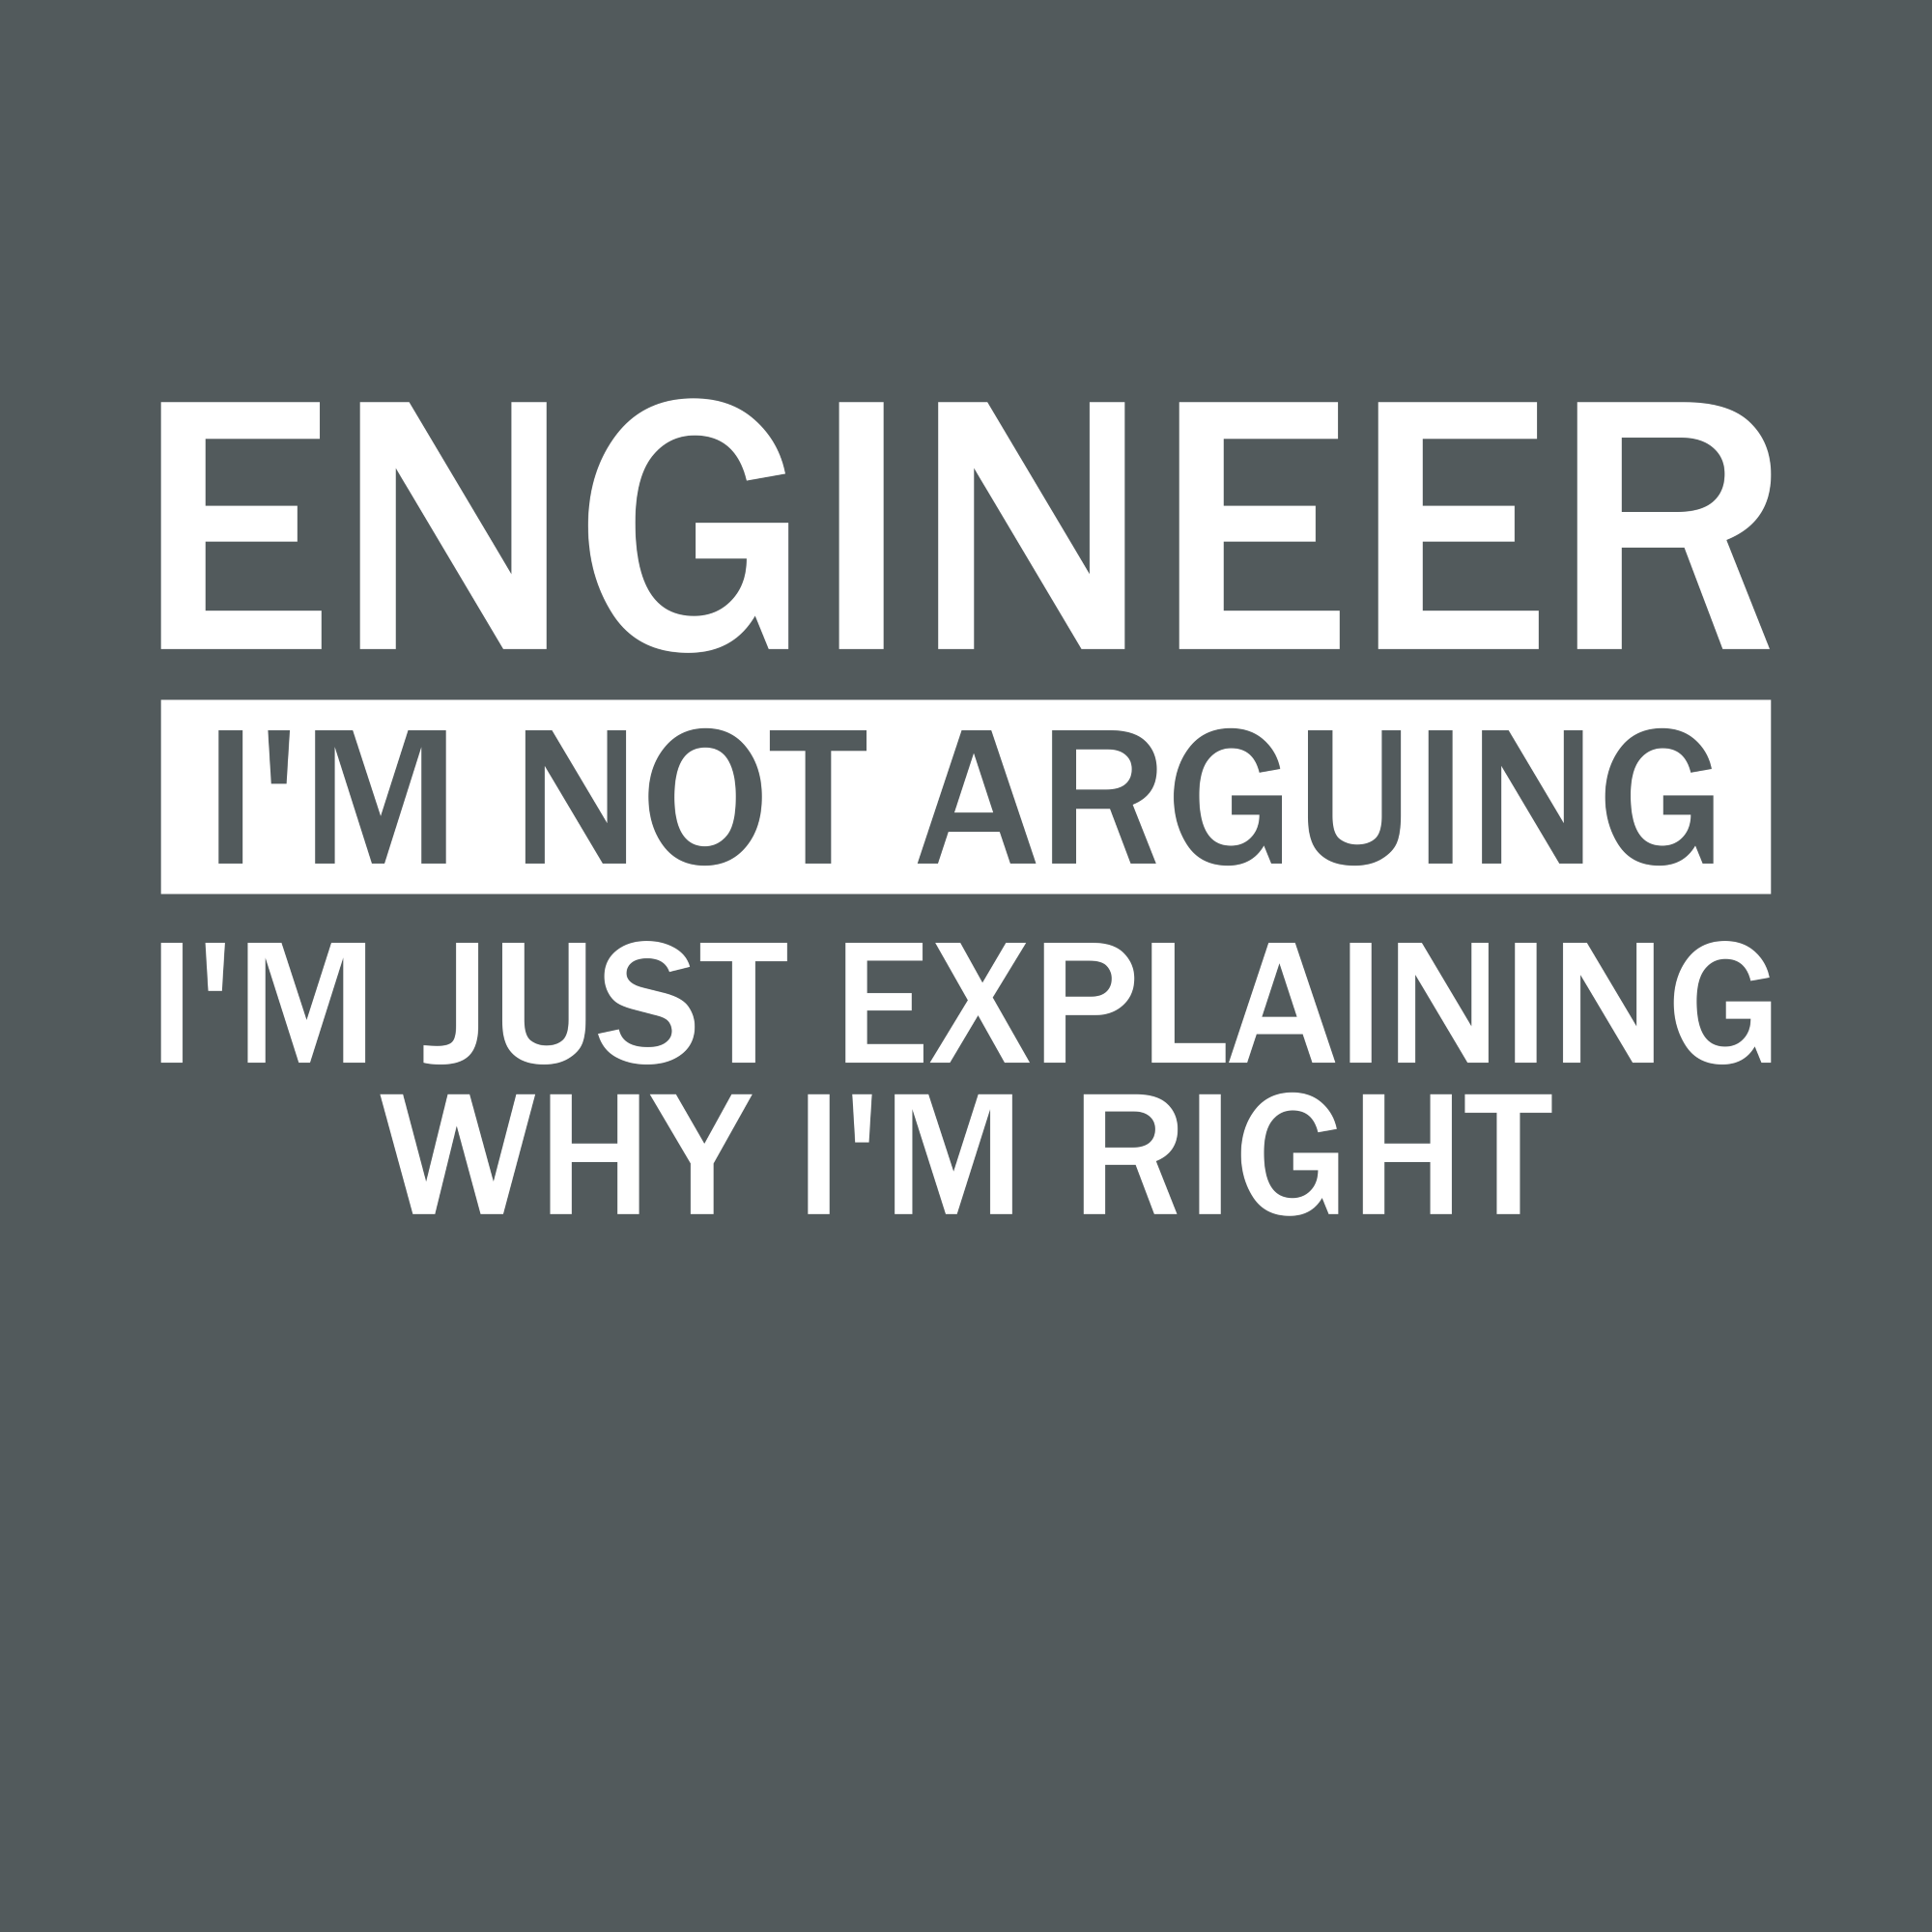 Engineer I M Not Arguing I M Just Explaining Why I M Right Engineering Humor Engineering Quotes Electrical Engineering Humor